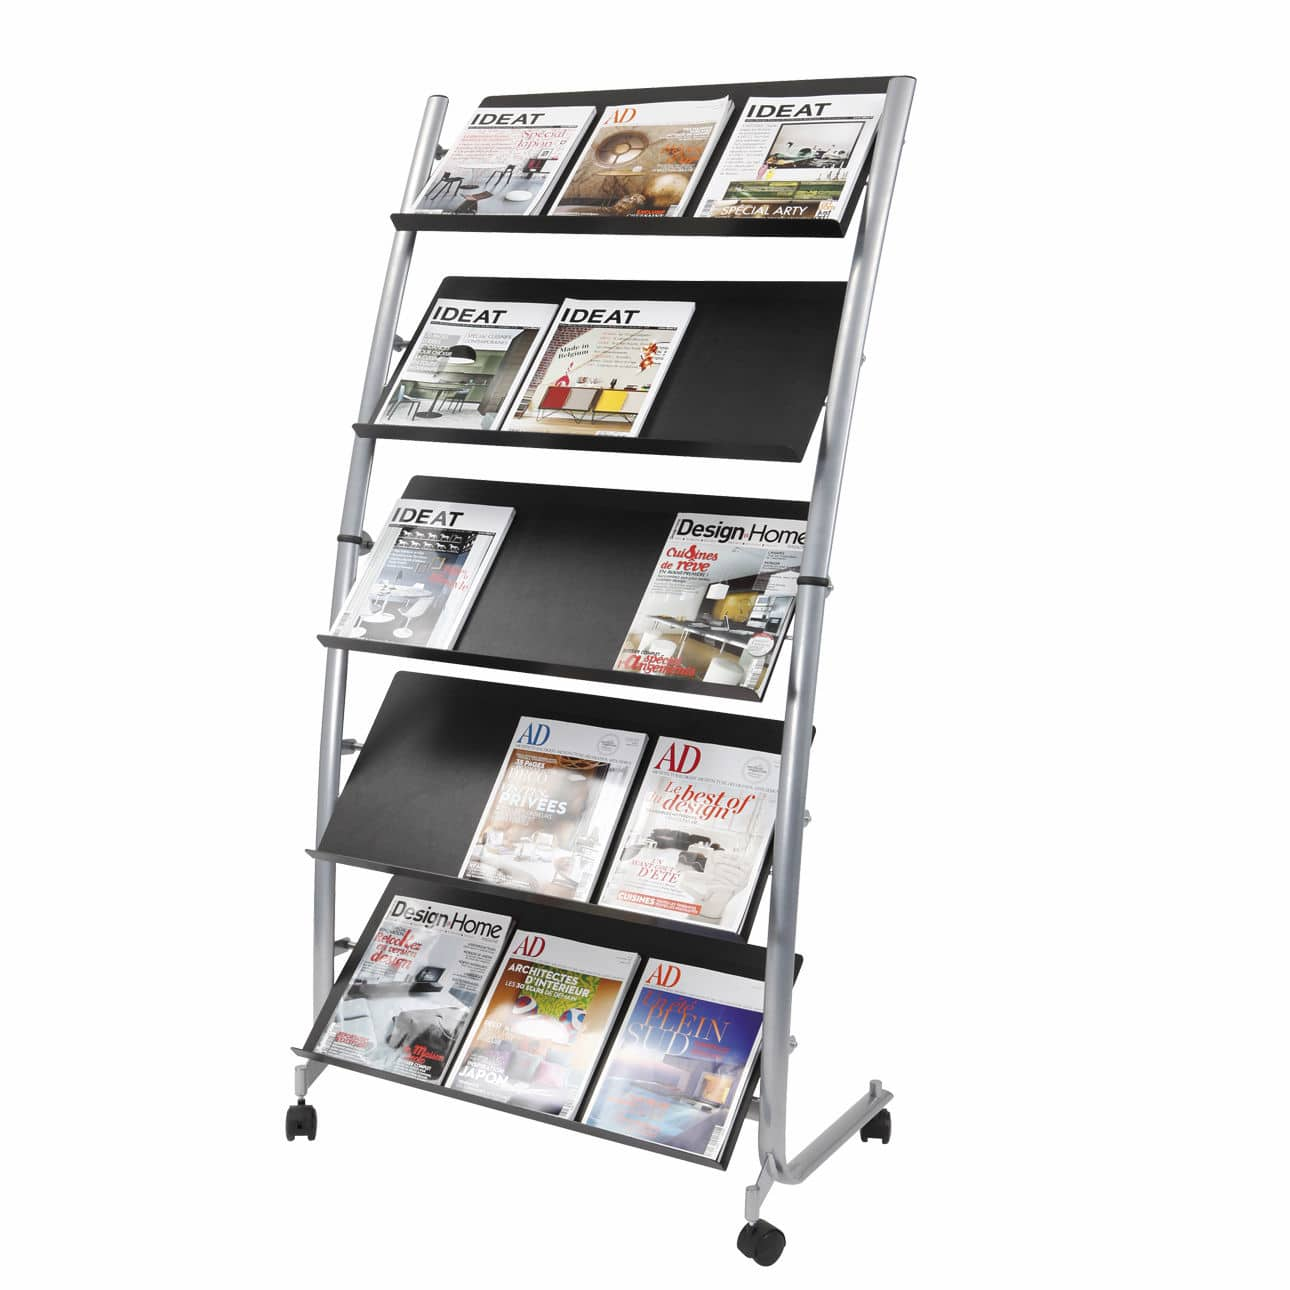 Periodicals Display Rack Plastic Metal On Casters Dd5gm